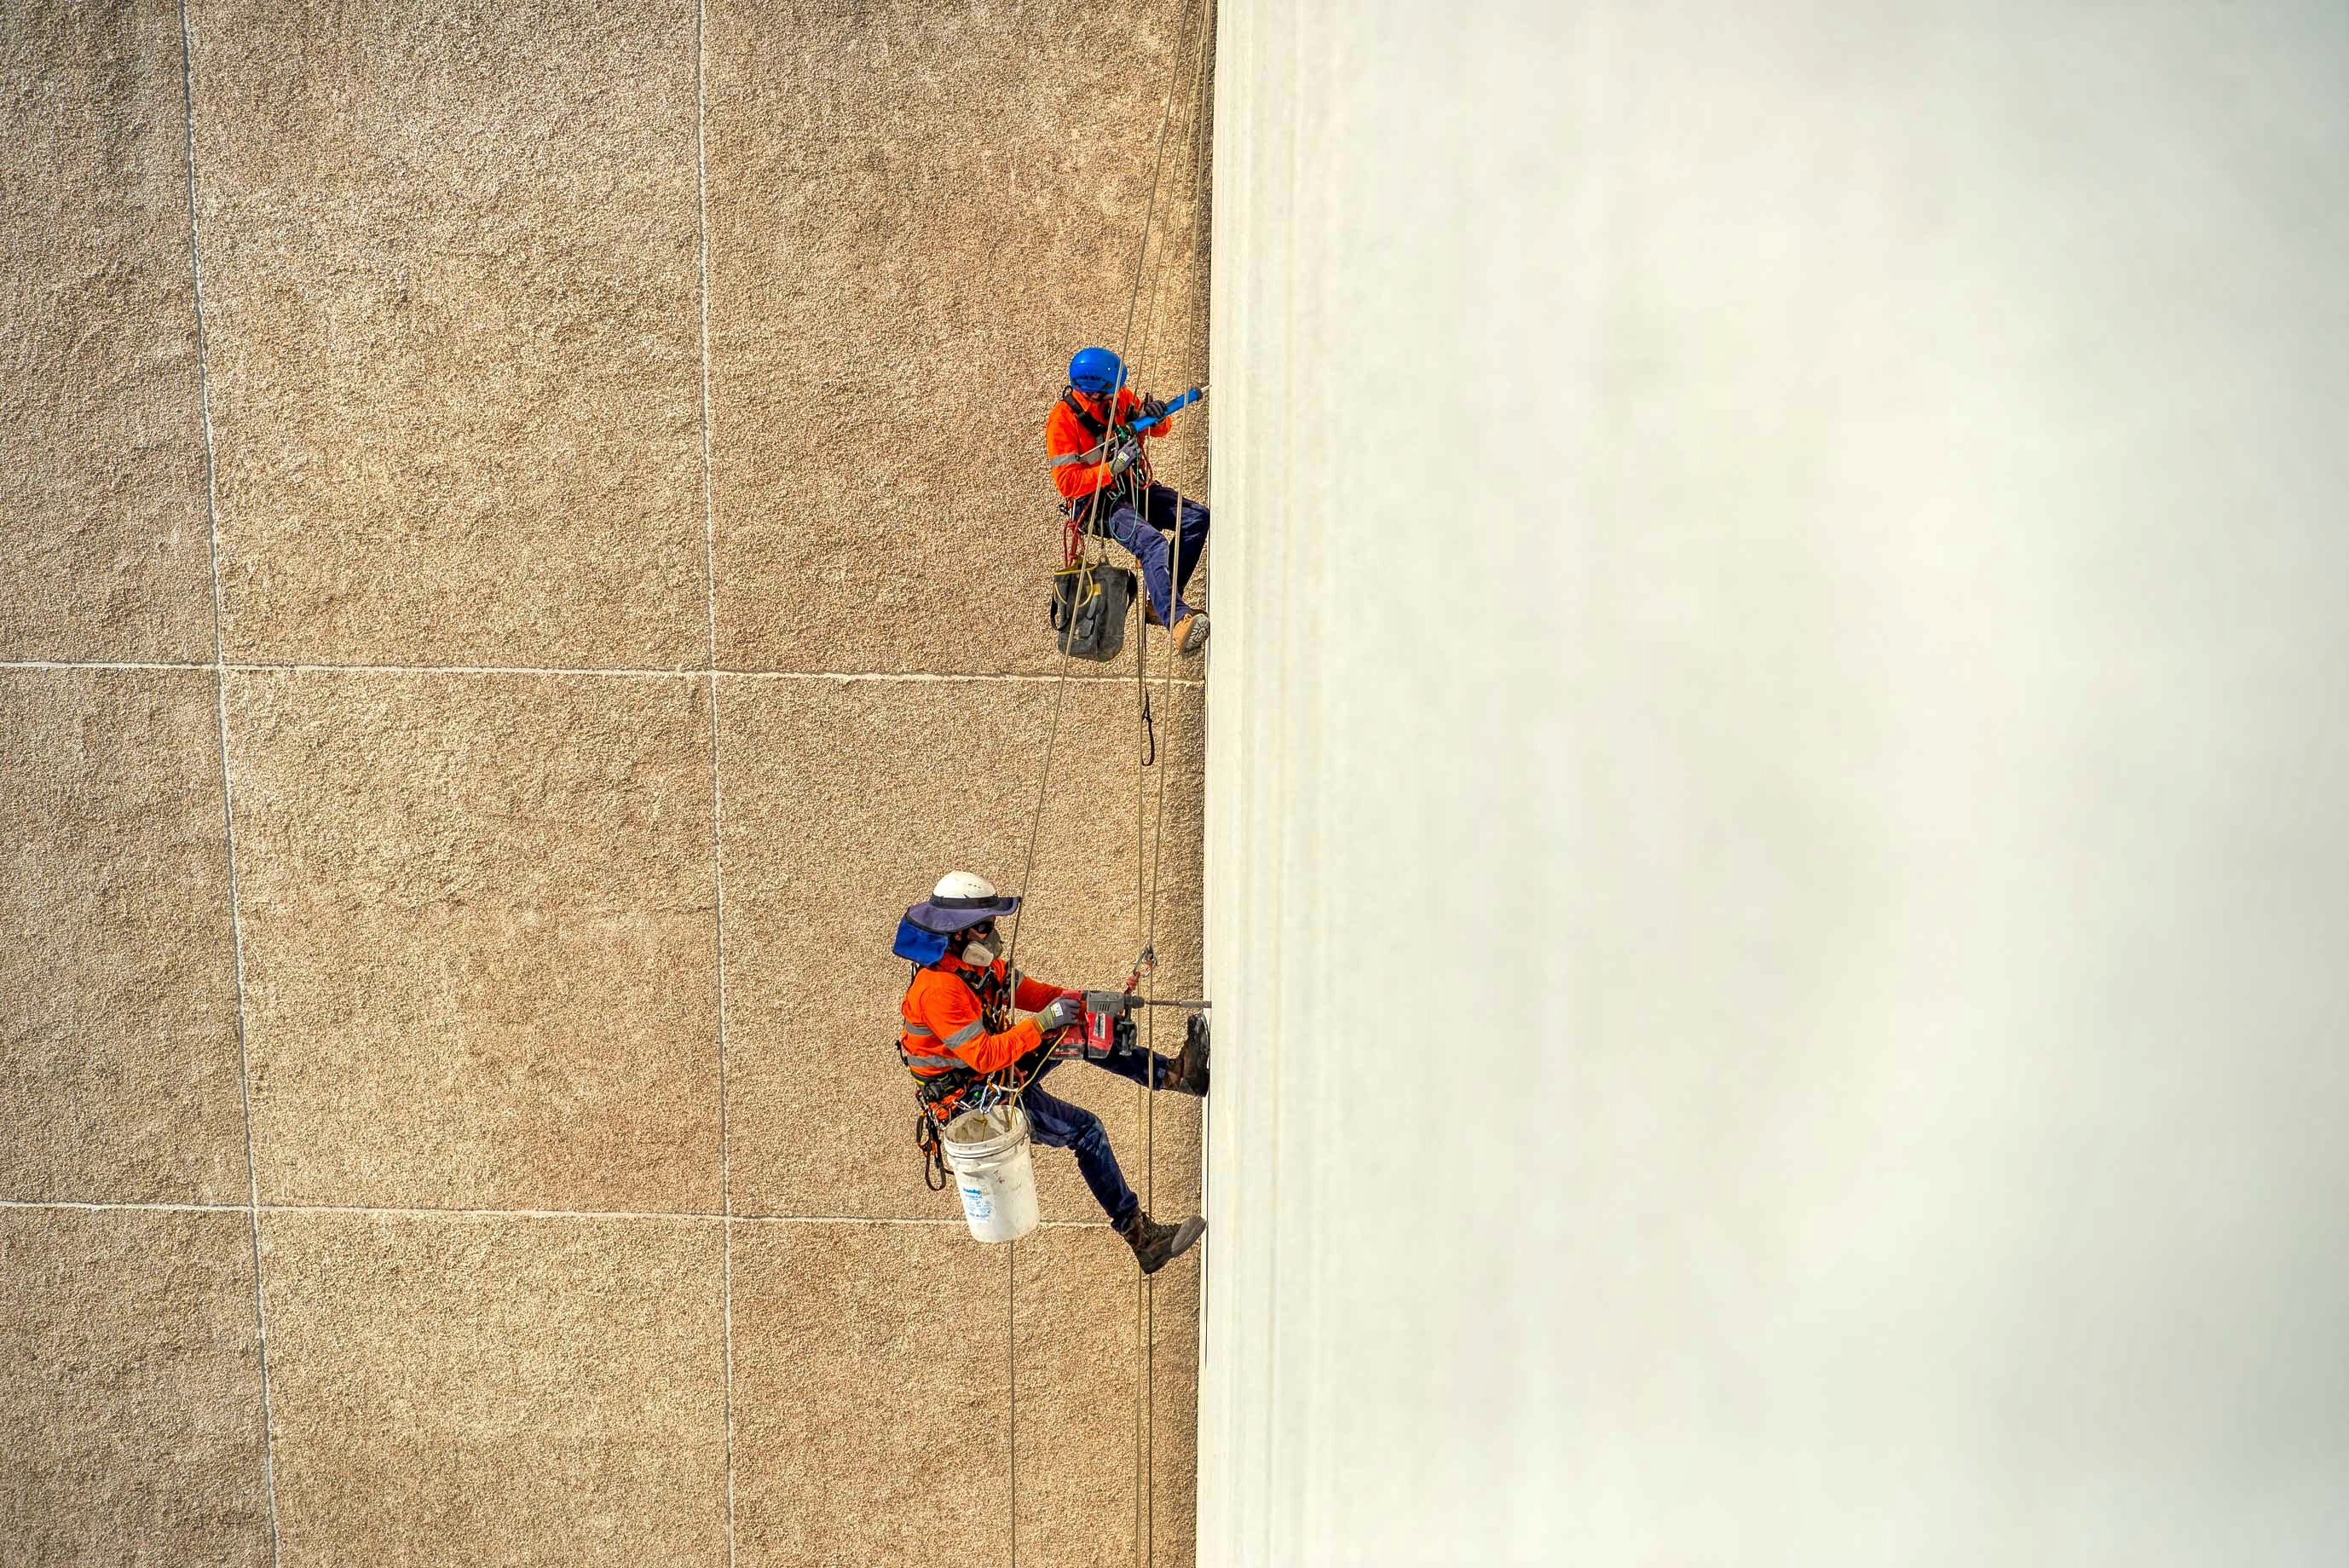 Abseiling down the side of a high rise building in Brisbane captured by Rapax Construction Photography